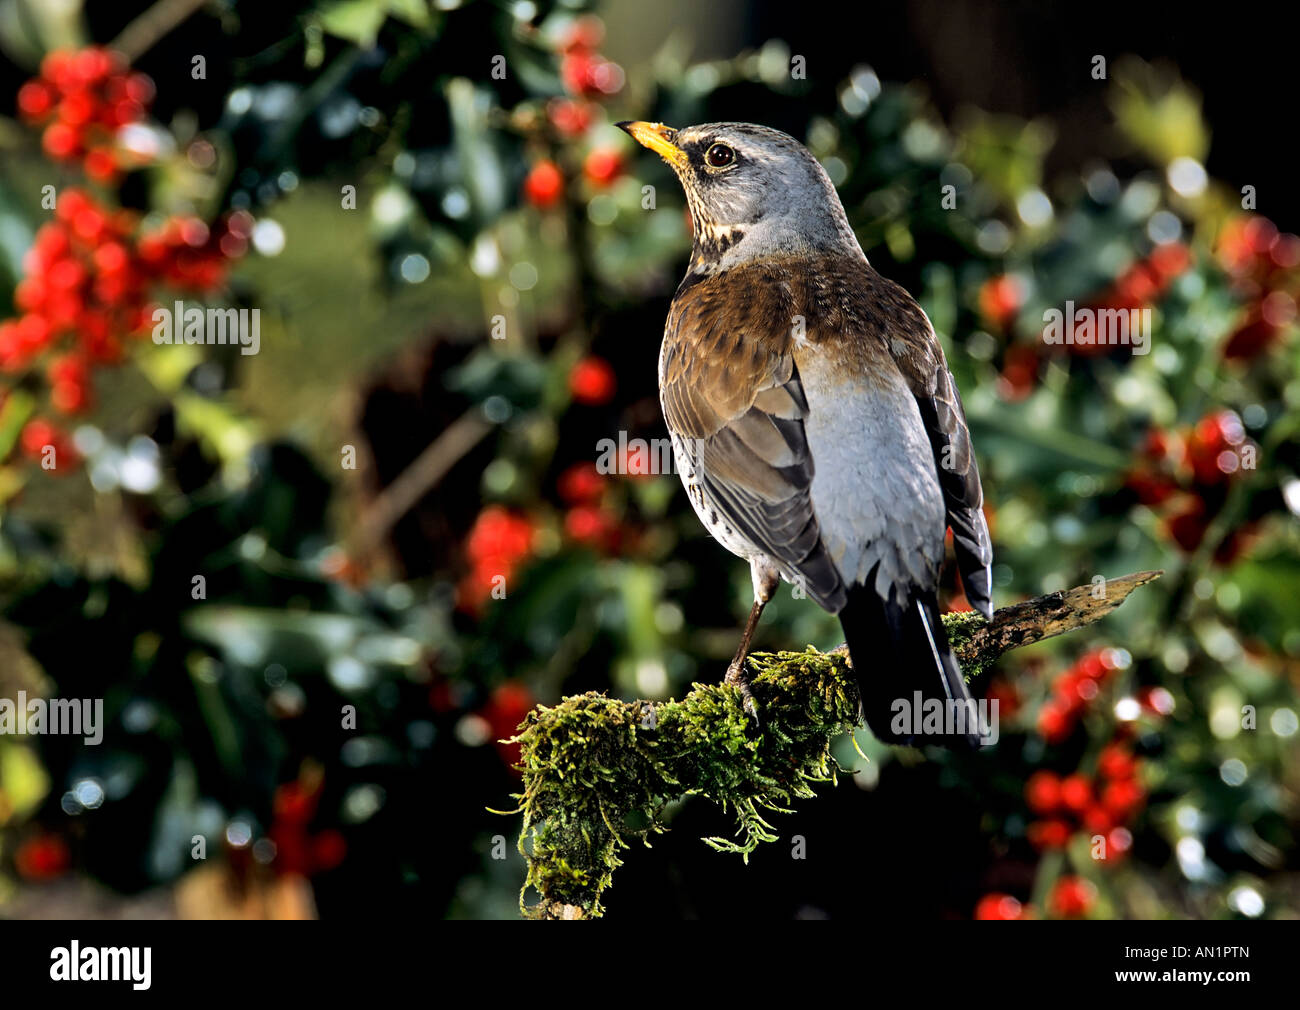 Wacholderdrossel Turdus pilaris European Fieldfare Stock Photo